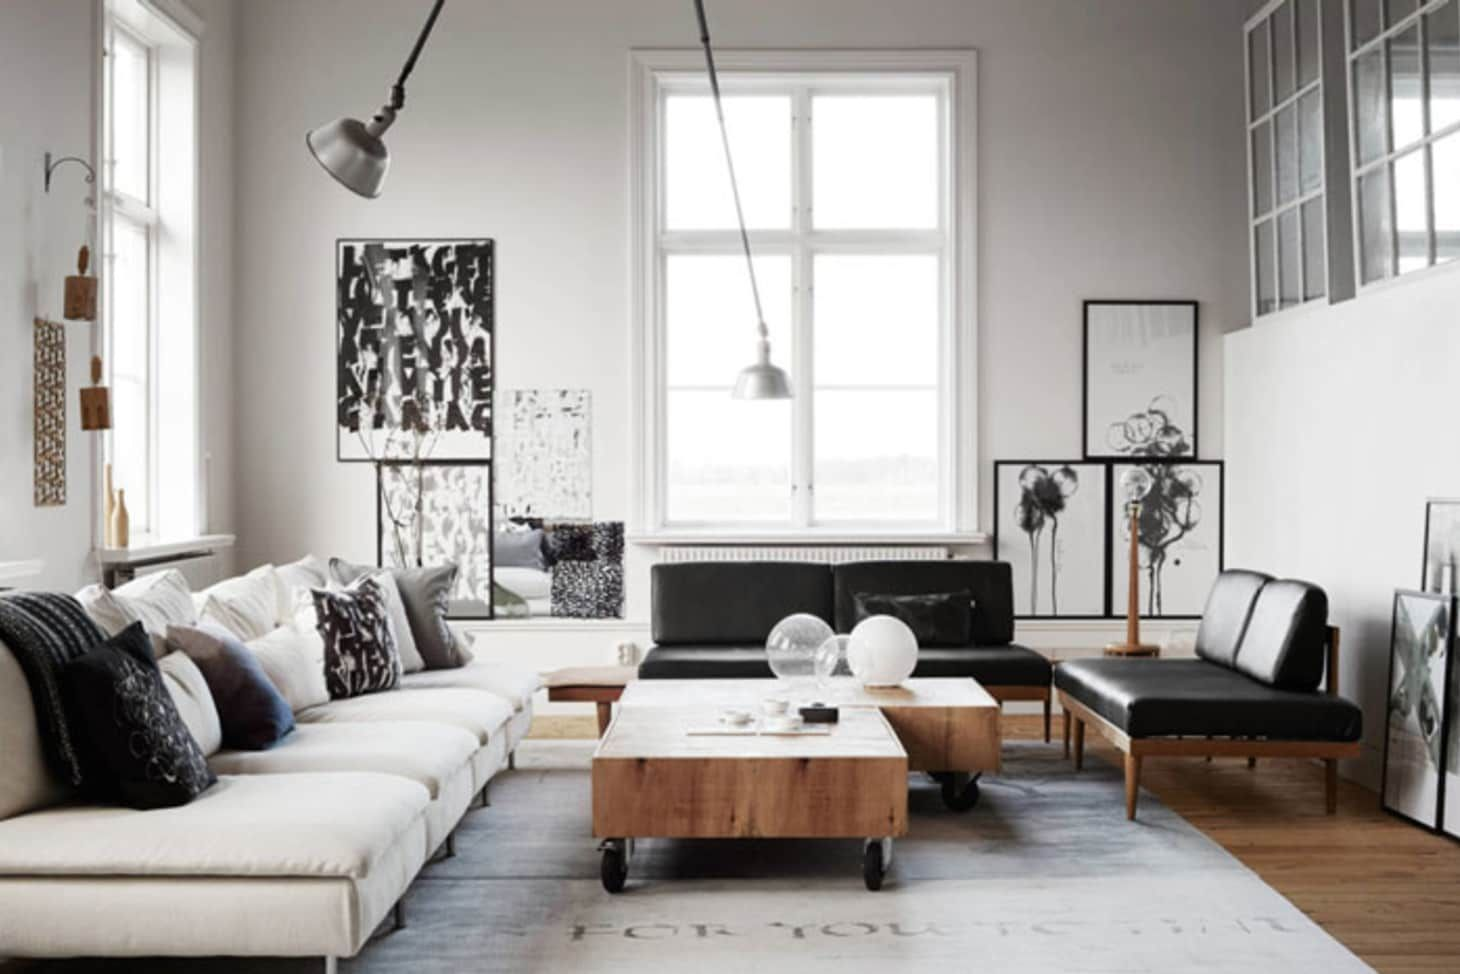 How To Set Up Your Living Room Without A Focus On The Tv Rustic Industrial Living Room Industrial Decor Living Room Living Room Interior